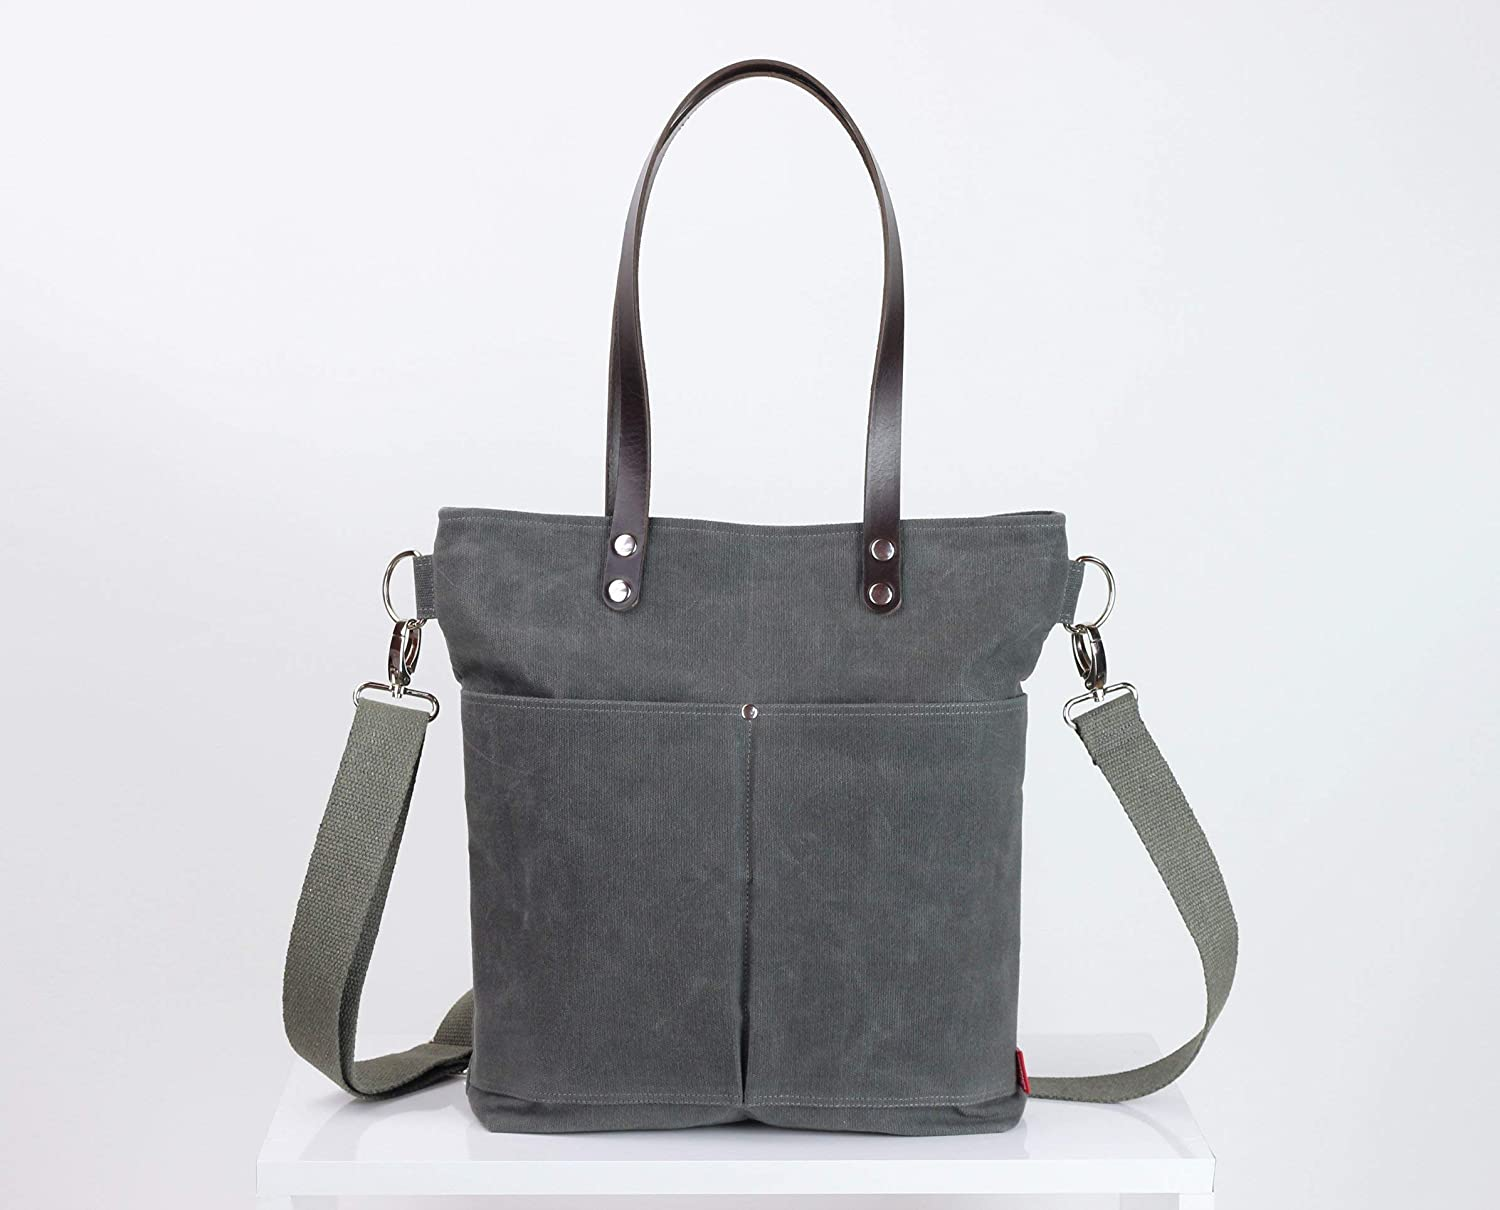 2bbf4200b Amazon.com: Waxed tote bag with long leather strap, extra thick leather,  gray, waxed canvas, large tote, separated pocket, cotton strap, daily use  bag: ...